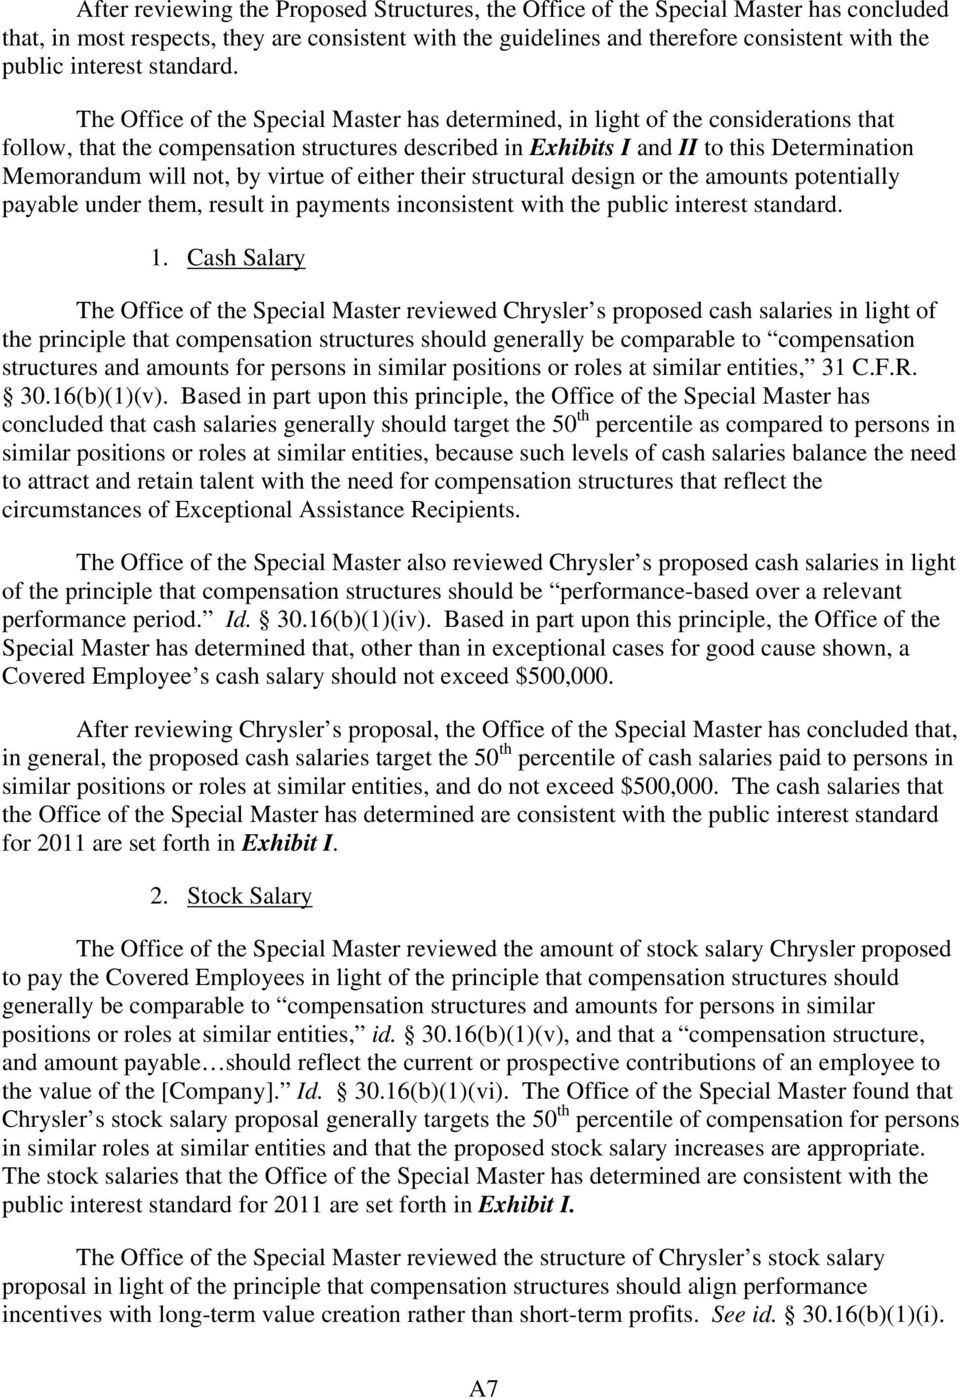 The Office of the Special Master has determined, in light of the considerations that follow, that the compensation structures described in Exhibits I and II to this Determination Memorandum will not,